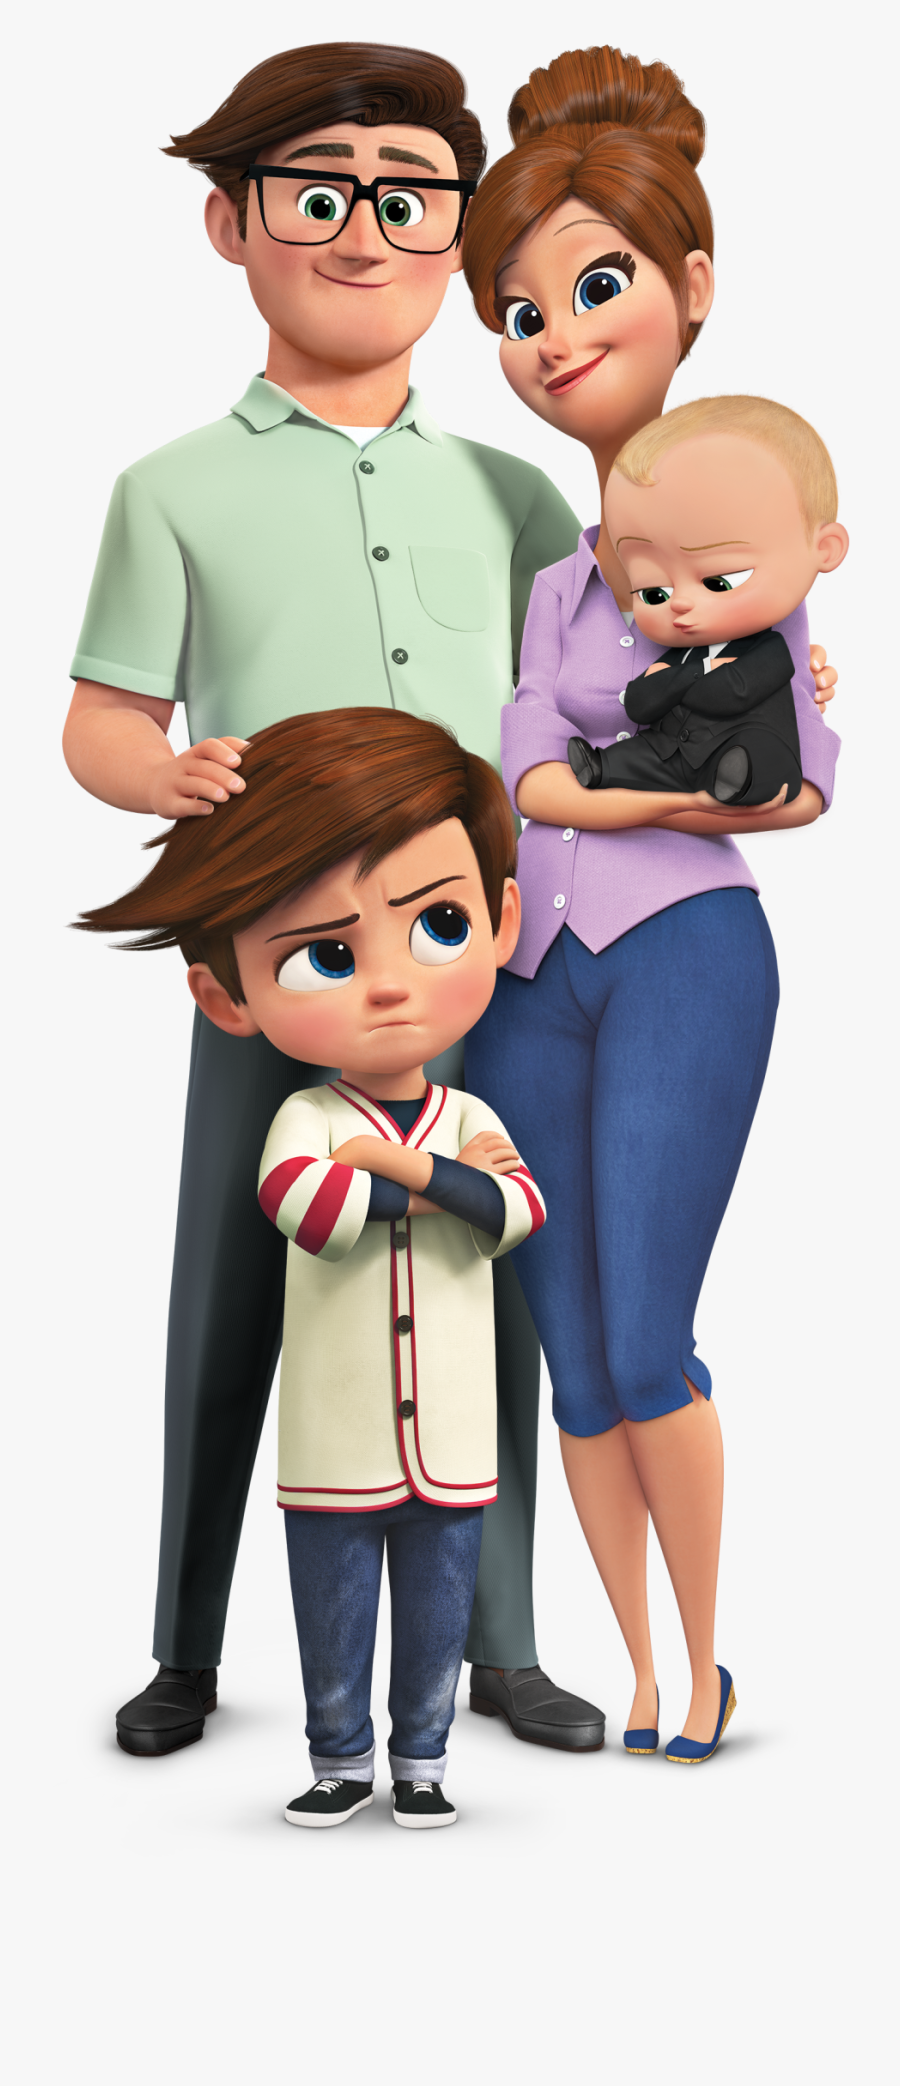 Want To Plan Your Own Timed Scavenger Hunt Game To - Boss Baby Family Png, Transparent Clipart